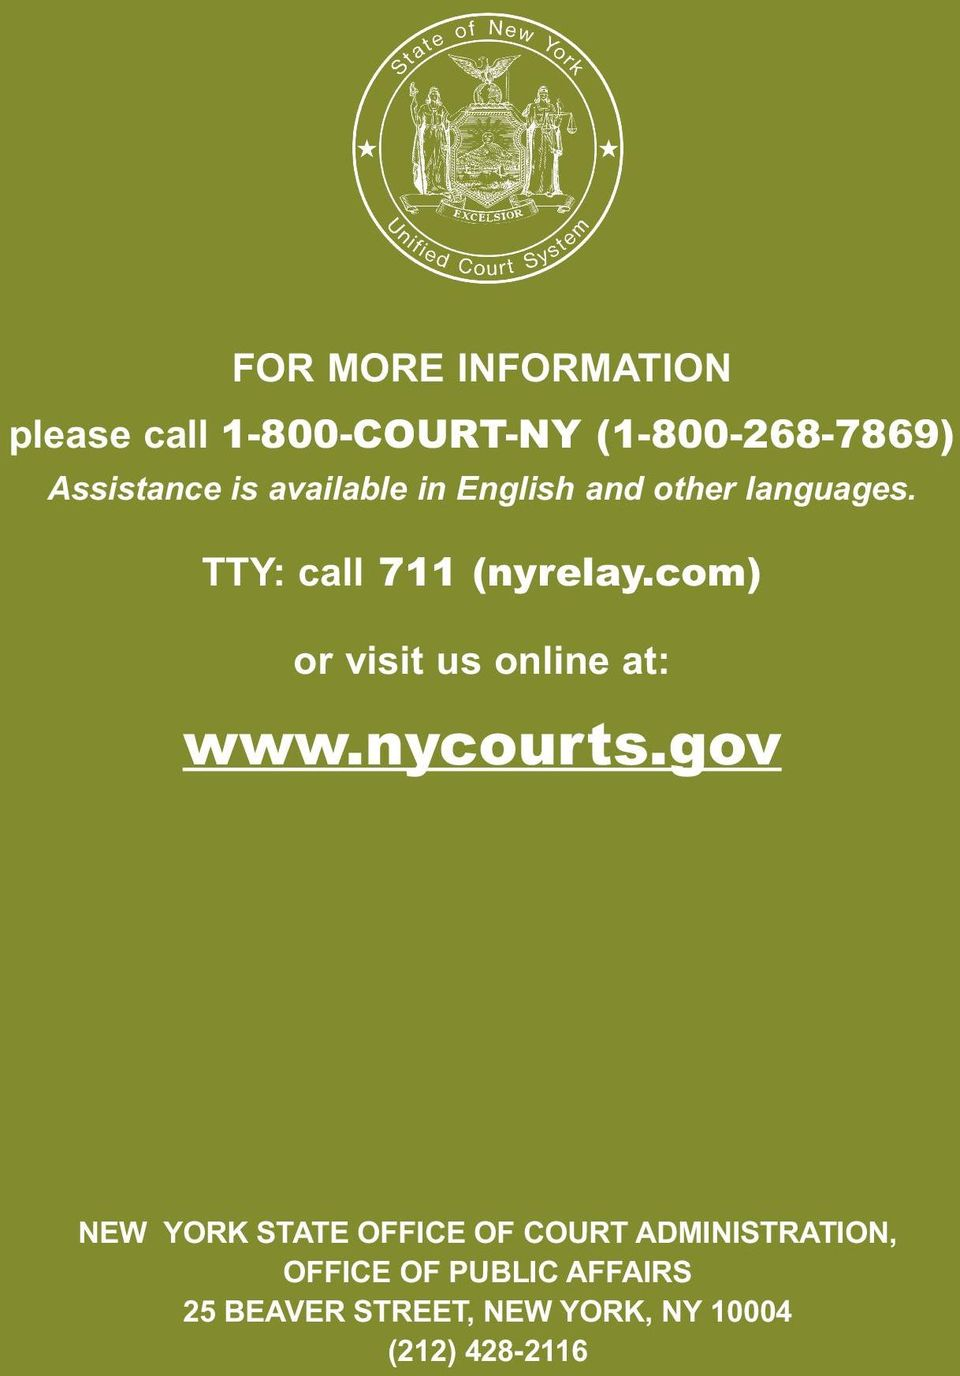 com) or visit us online at: www.nycourts.